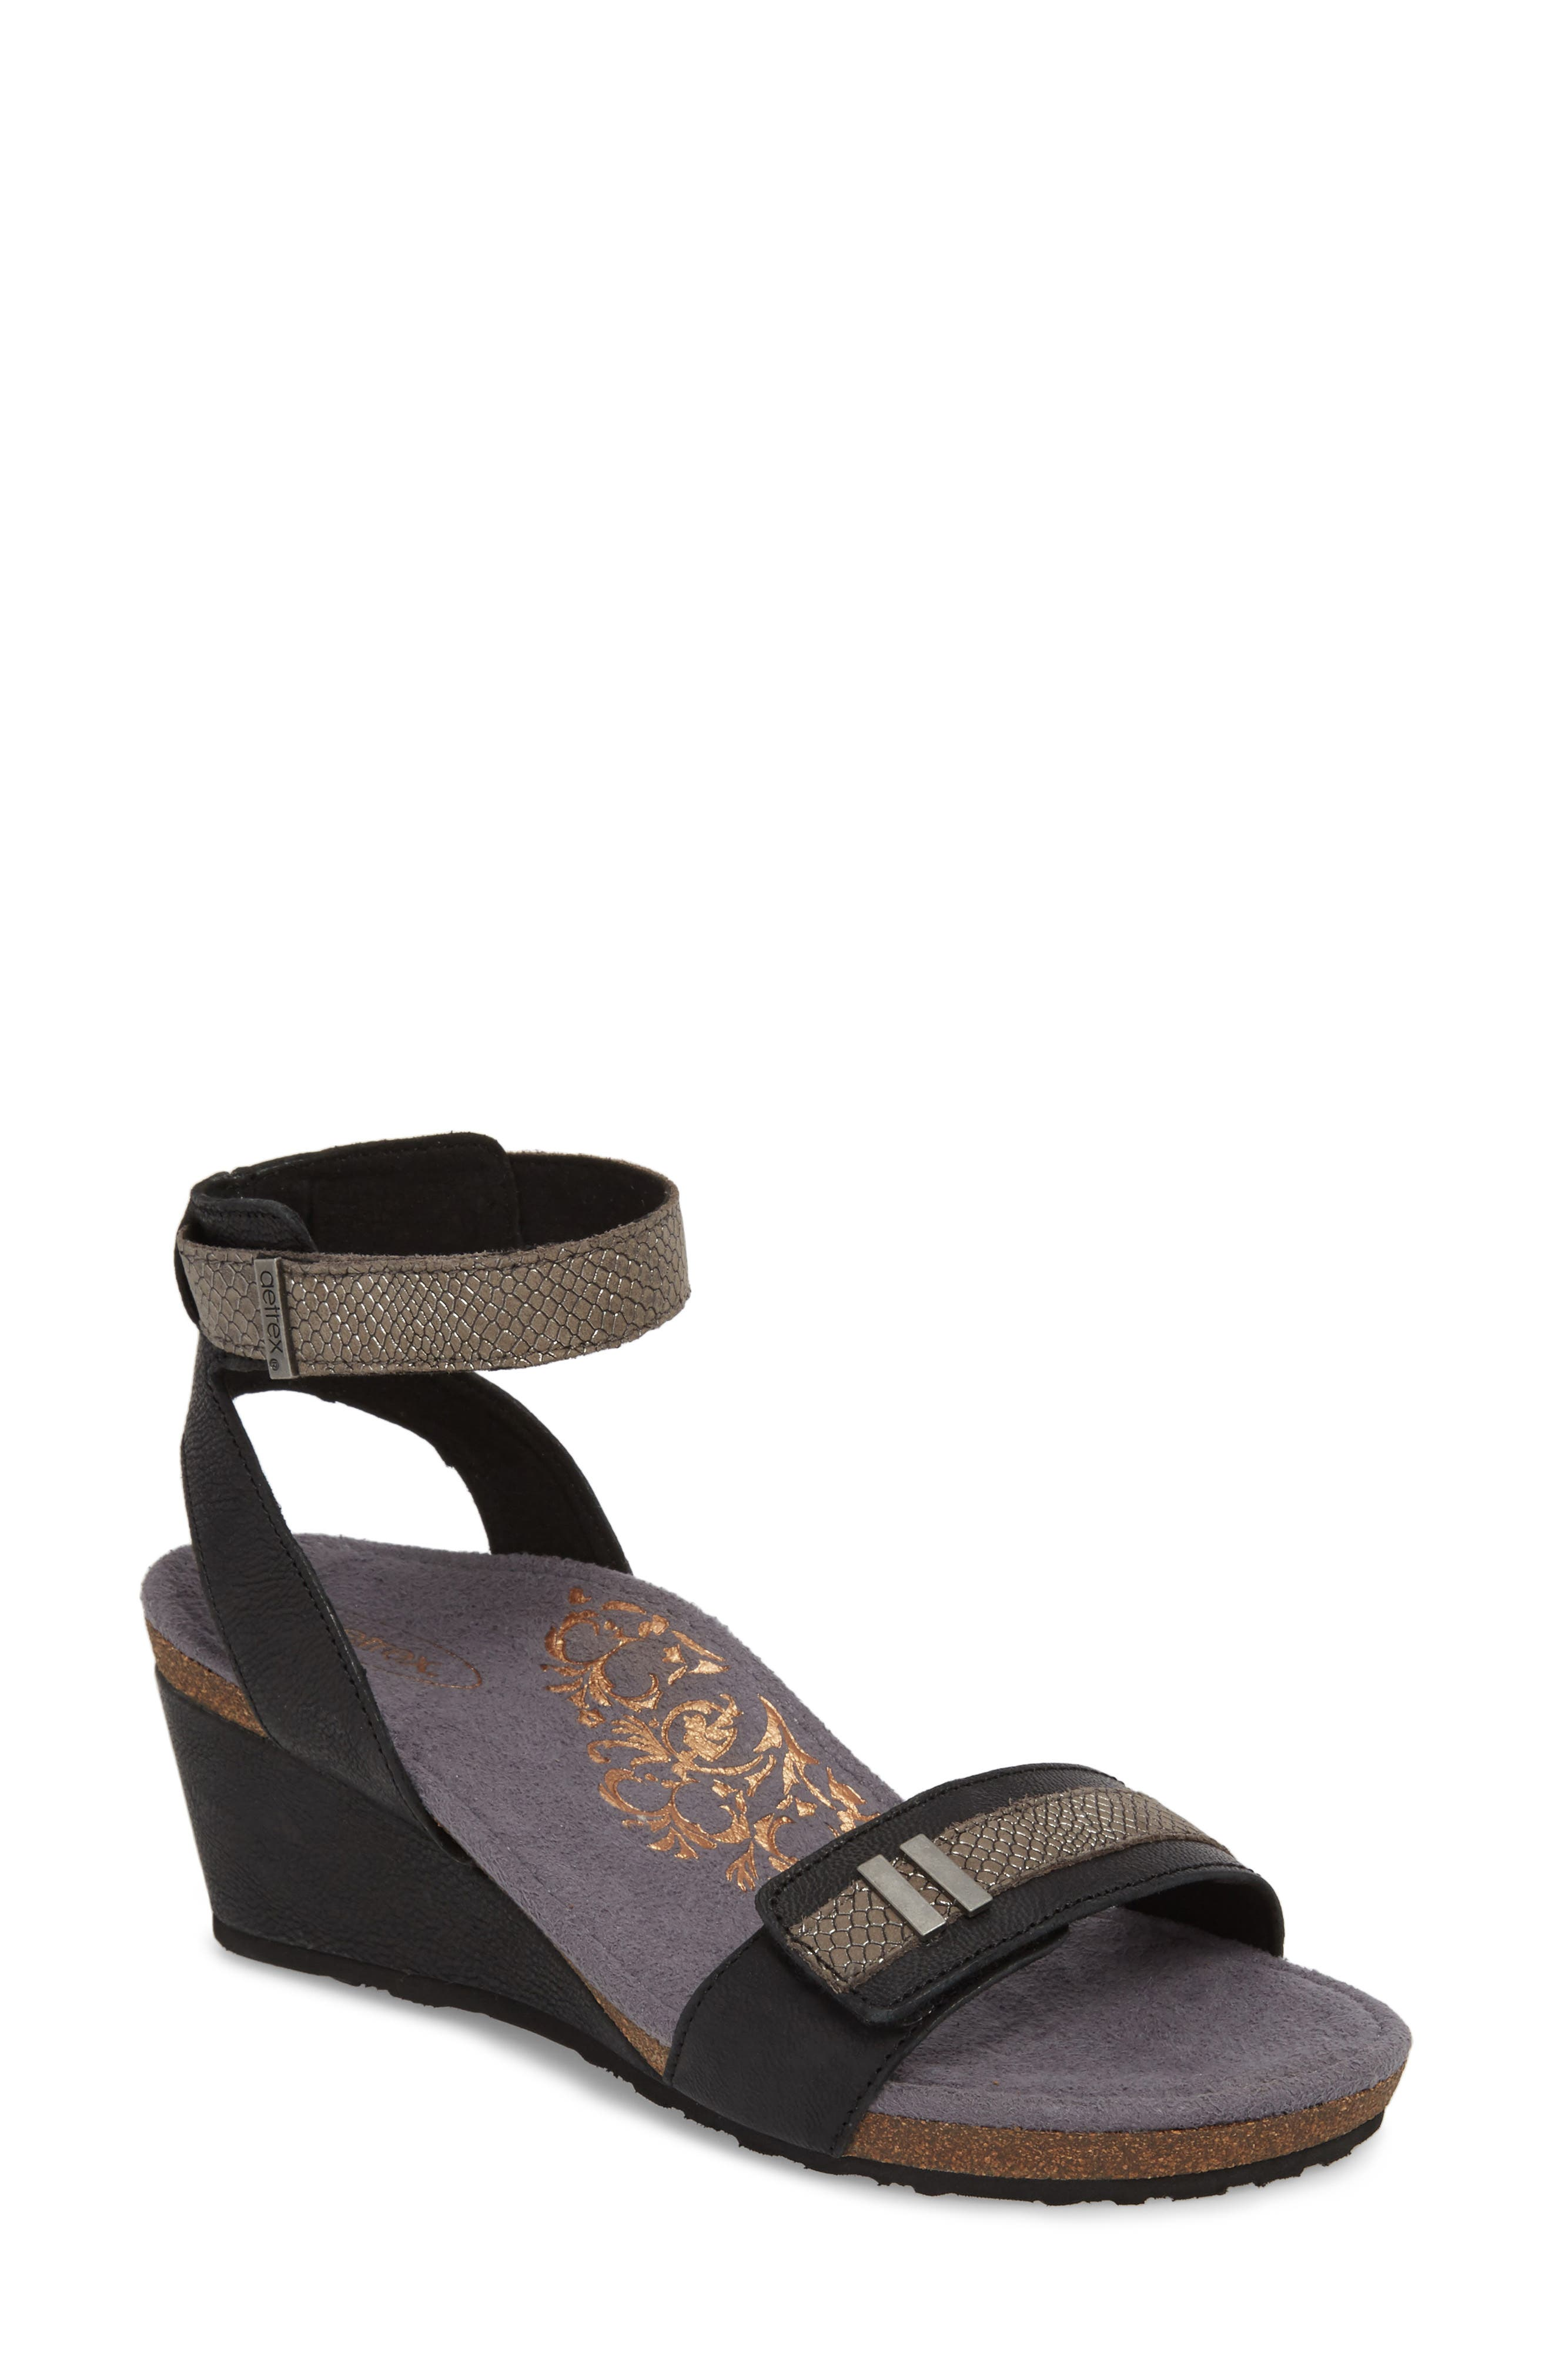 Gia Wedge Sandal,                             Main thumbnail 1, color,                             BLACK LEATHER